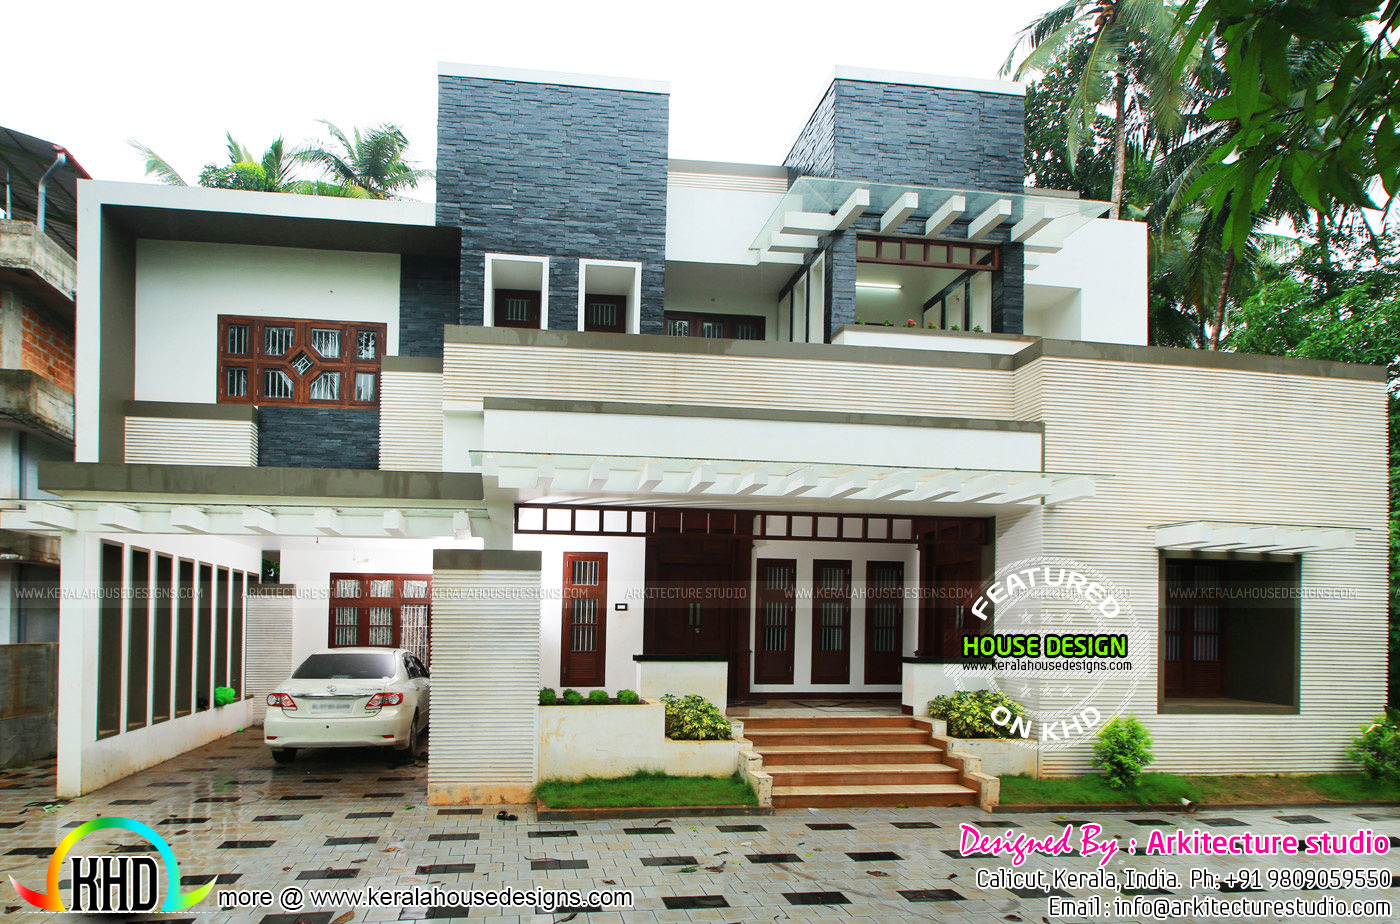 5000 sq ft house work finished kerala home design and for 3000 sq ft house plans kerala style